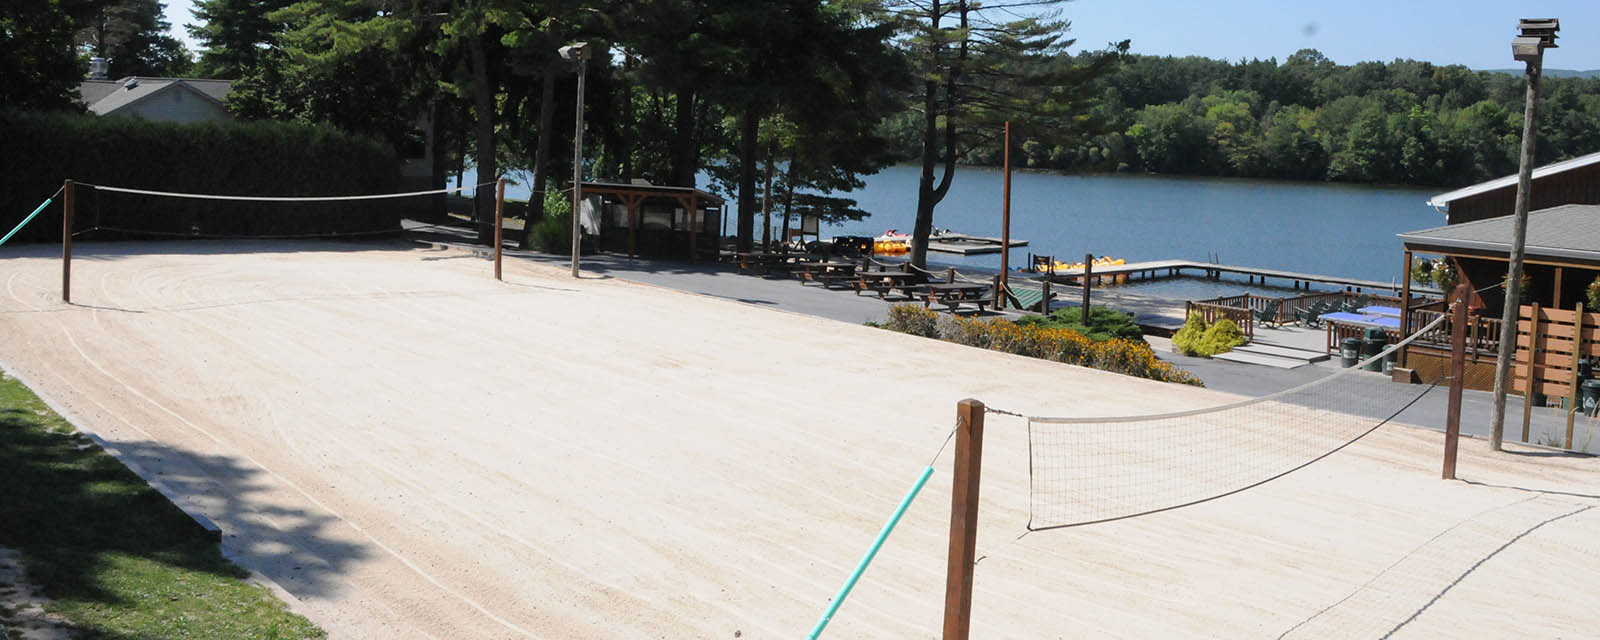 beach volleyball course